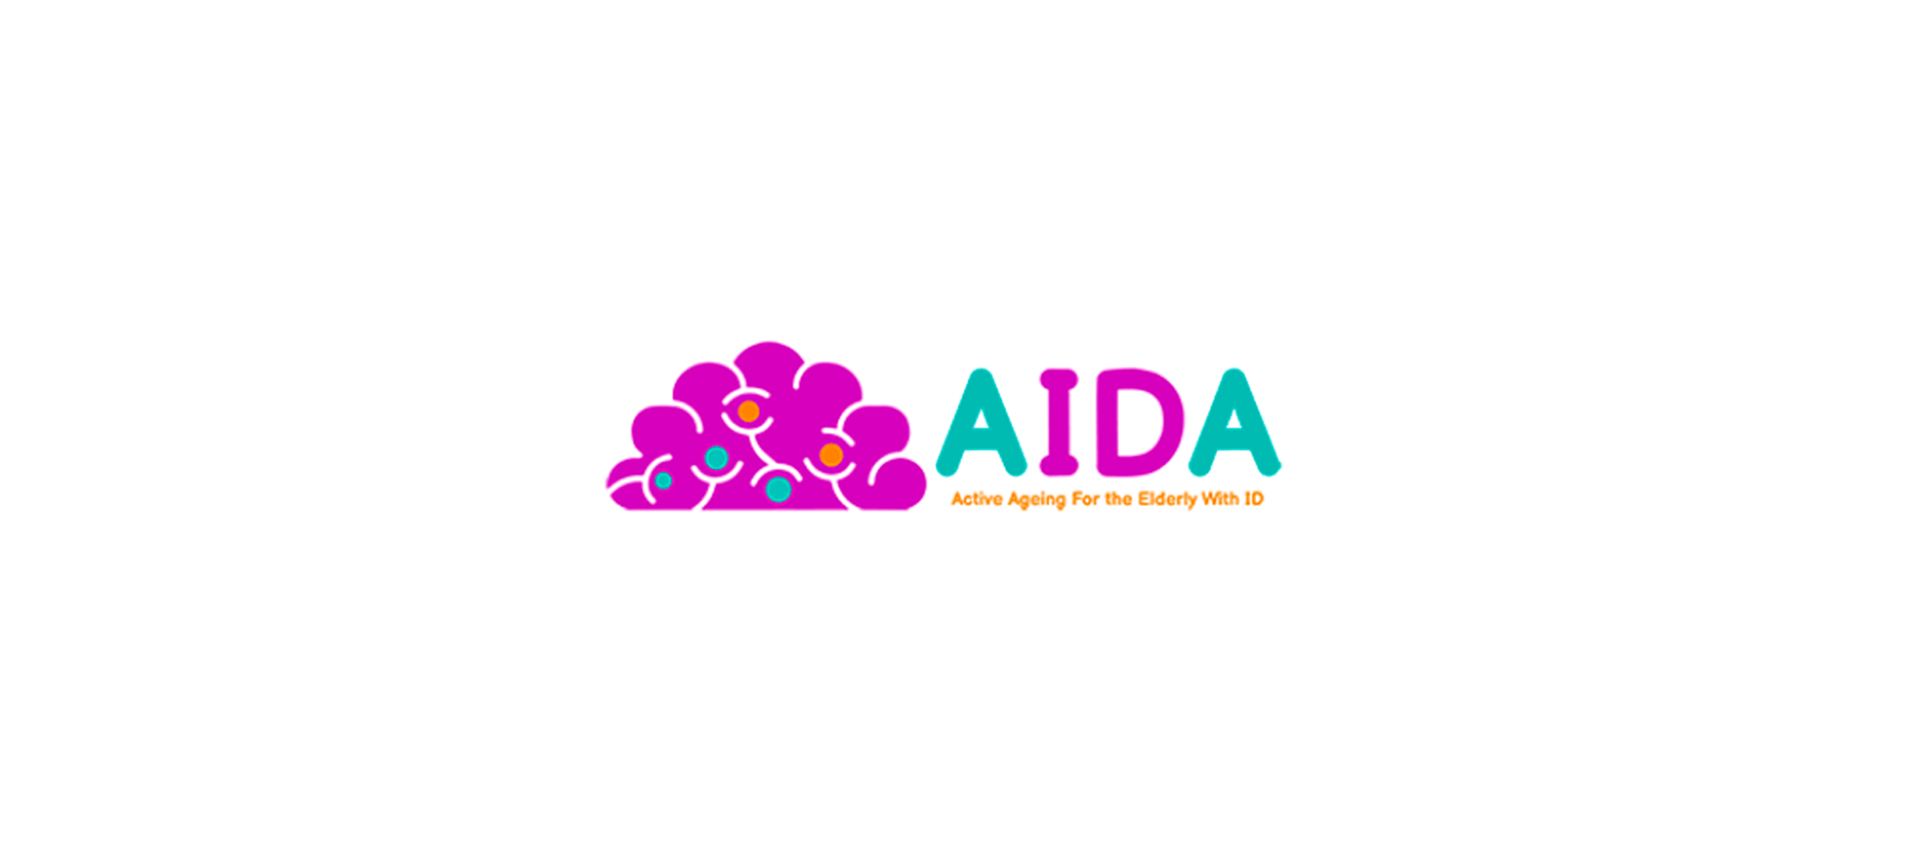 AIDA - Active Ageing for the Eldery With ID